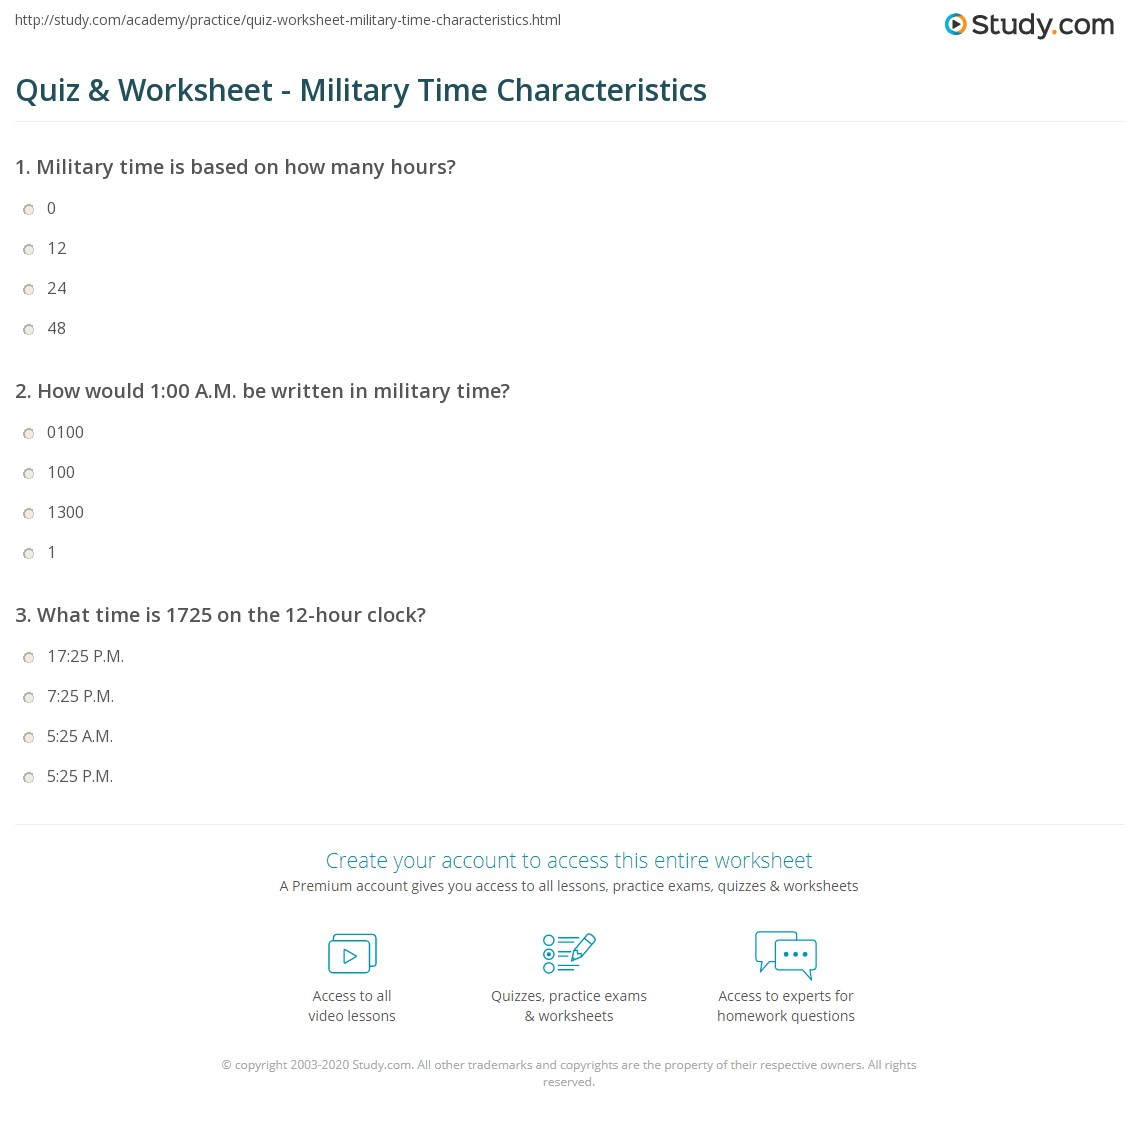 worksheet Am And Pm Worksheets quiz worksheet military time characteristics study com how would 100 a m be written in time